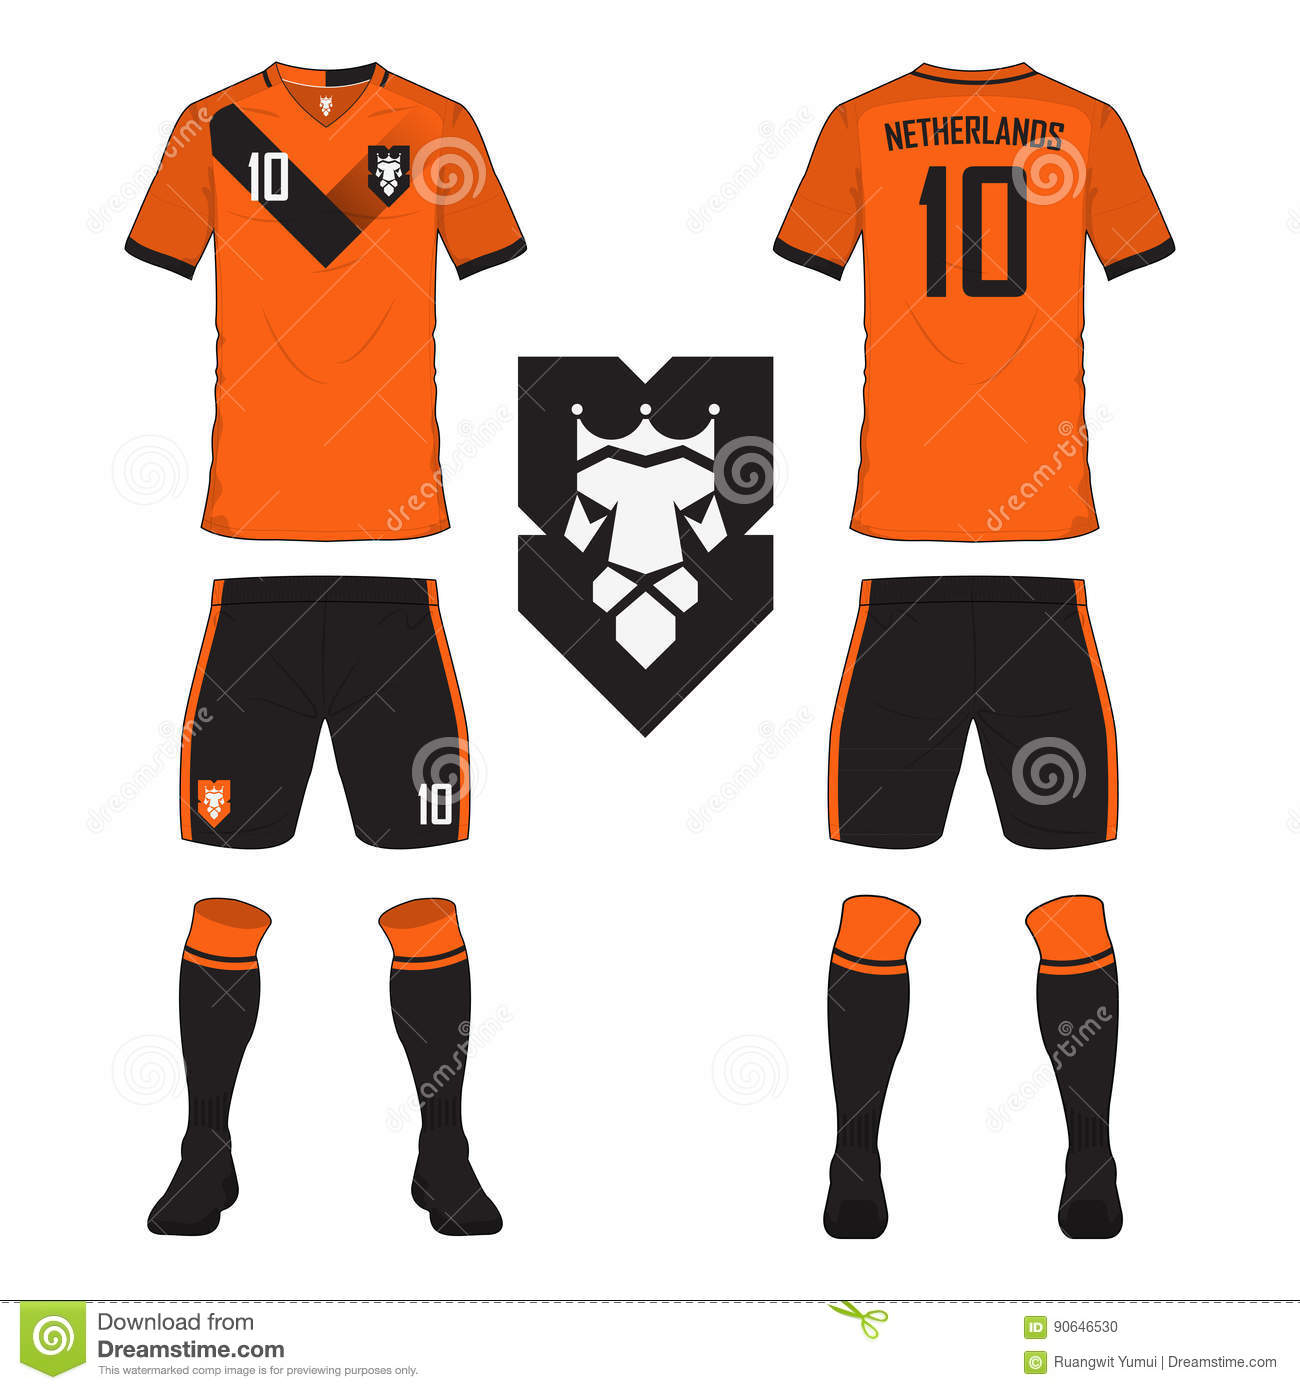 ddaeeae62 Set of soccer jersey or football kit template for Netherlands national football  team. Front and back view soccer uniform. Sport shirt mock up. Vector ...